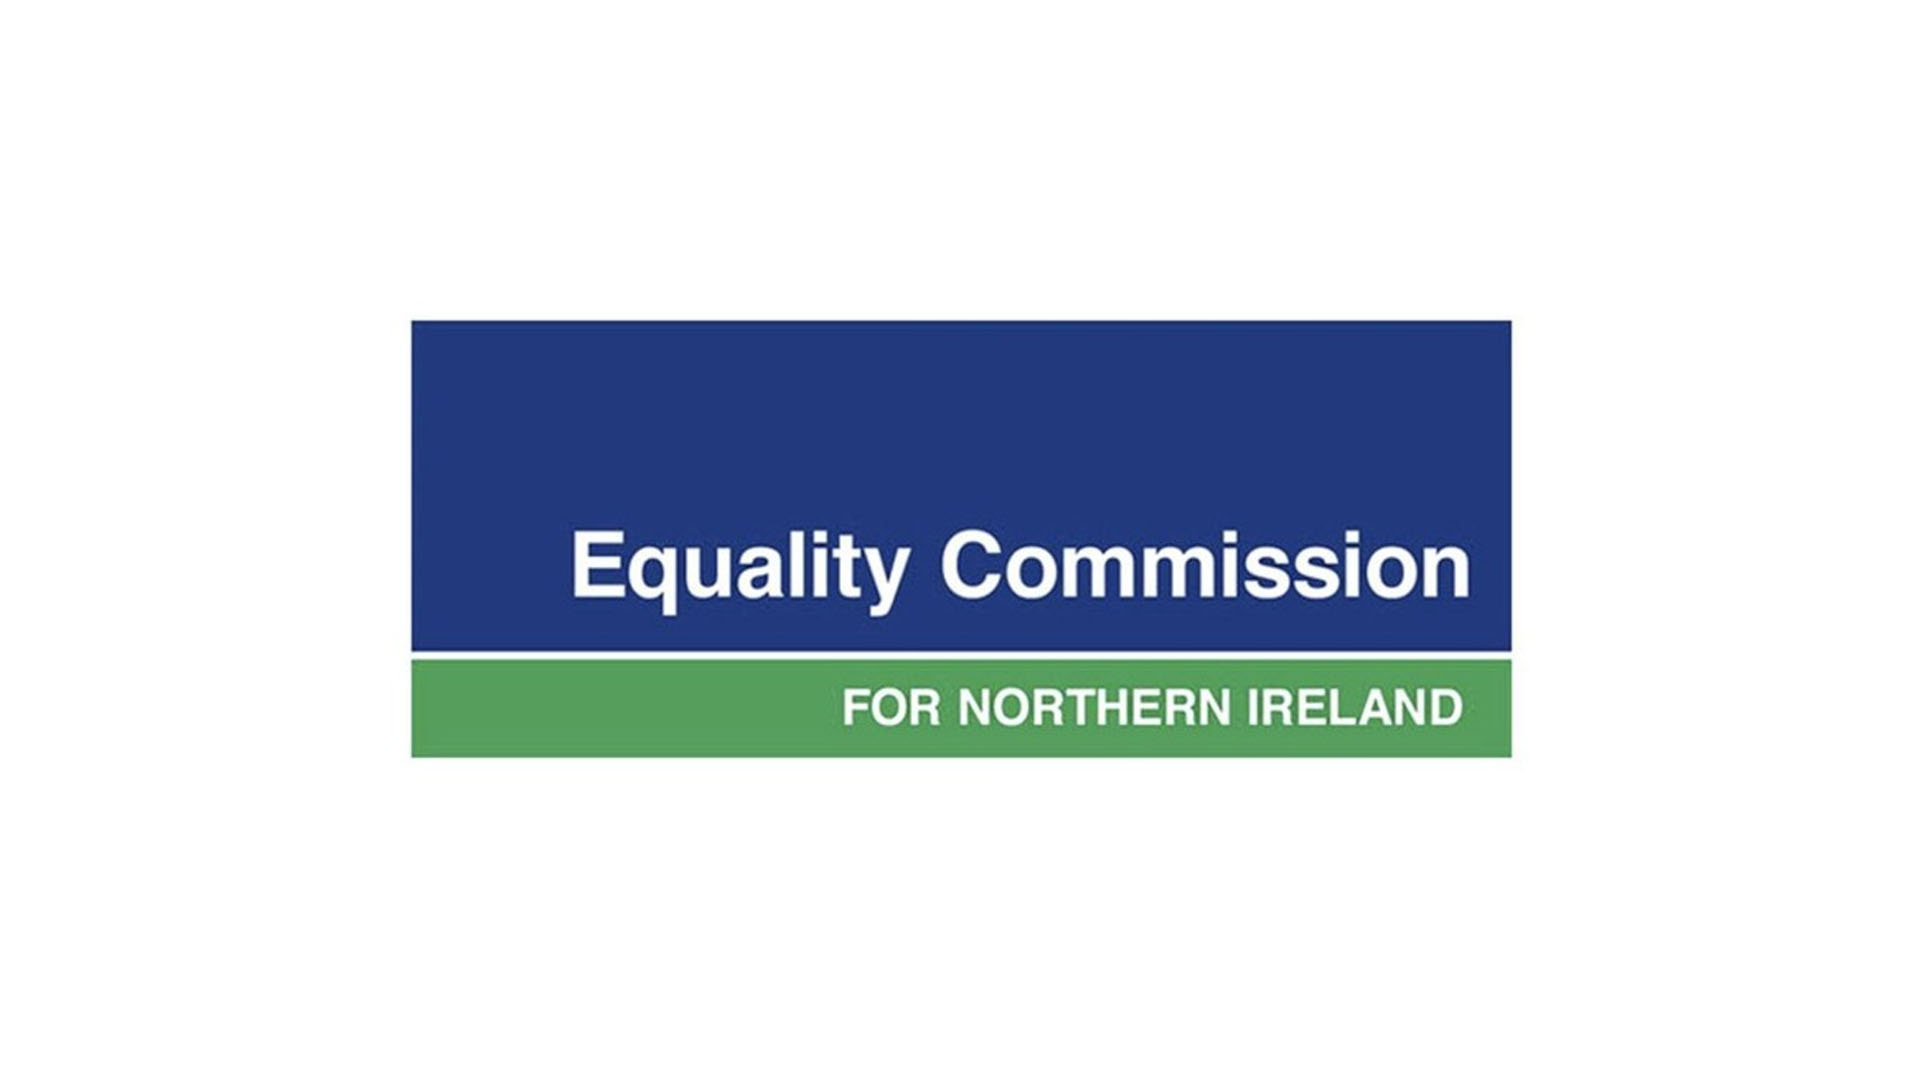 Equality Commission for Northern Ireland